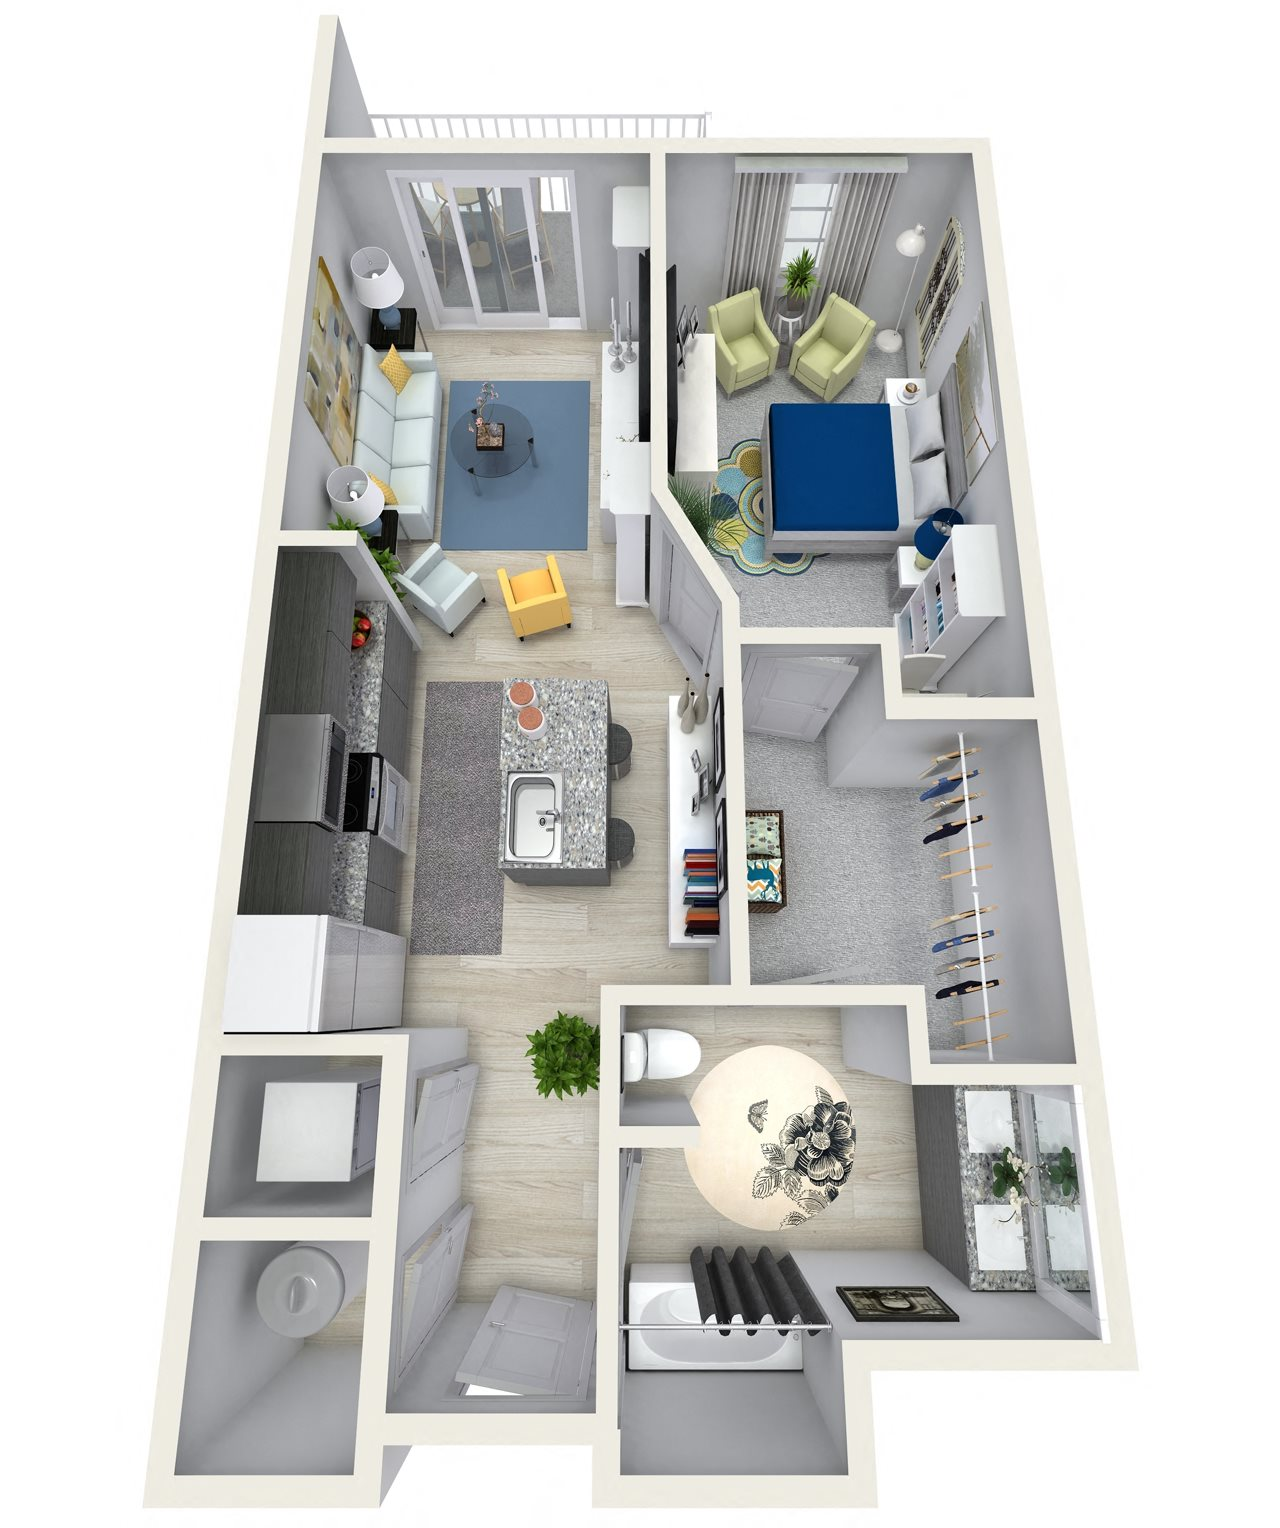 Neo Vertika: Floor Plans Of Channel Club Apartments In Tampa, FL